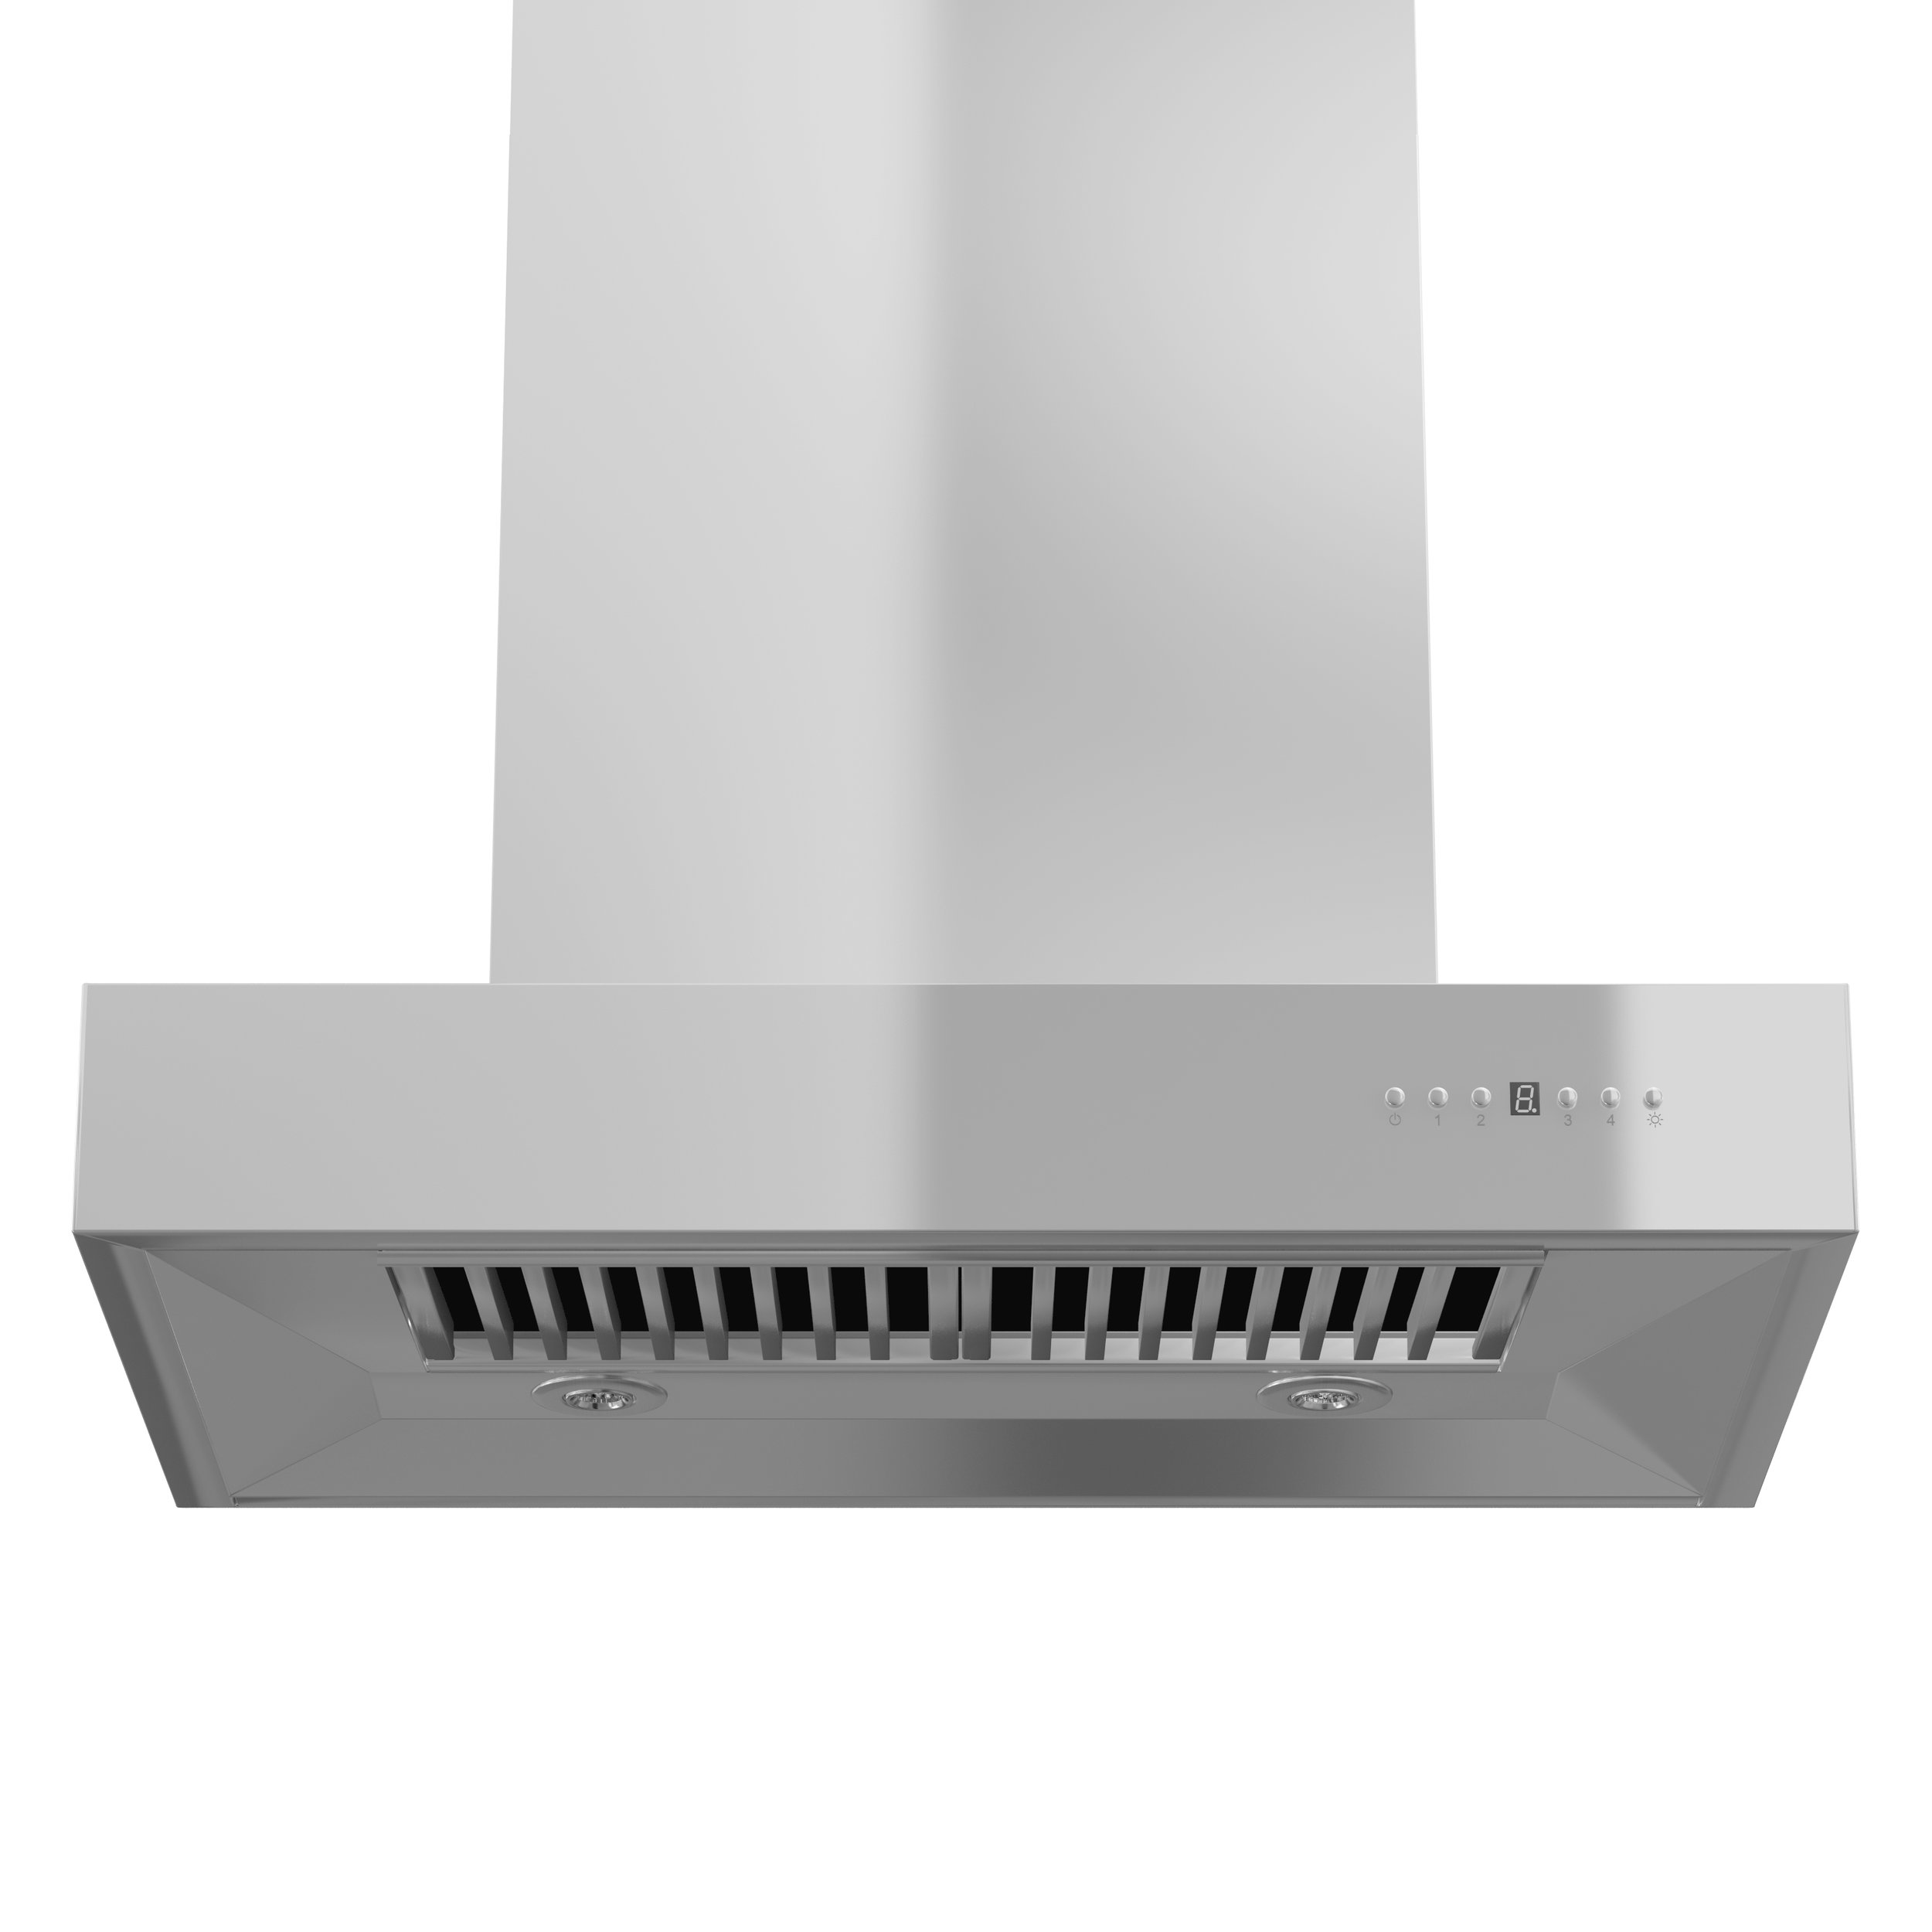 zline-stainless-steel-wall-mounted-range-hood-KECOM-underneath.jpg